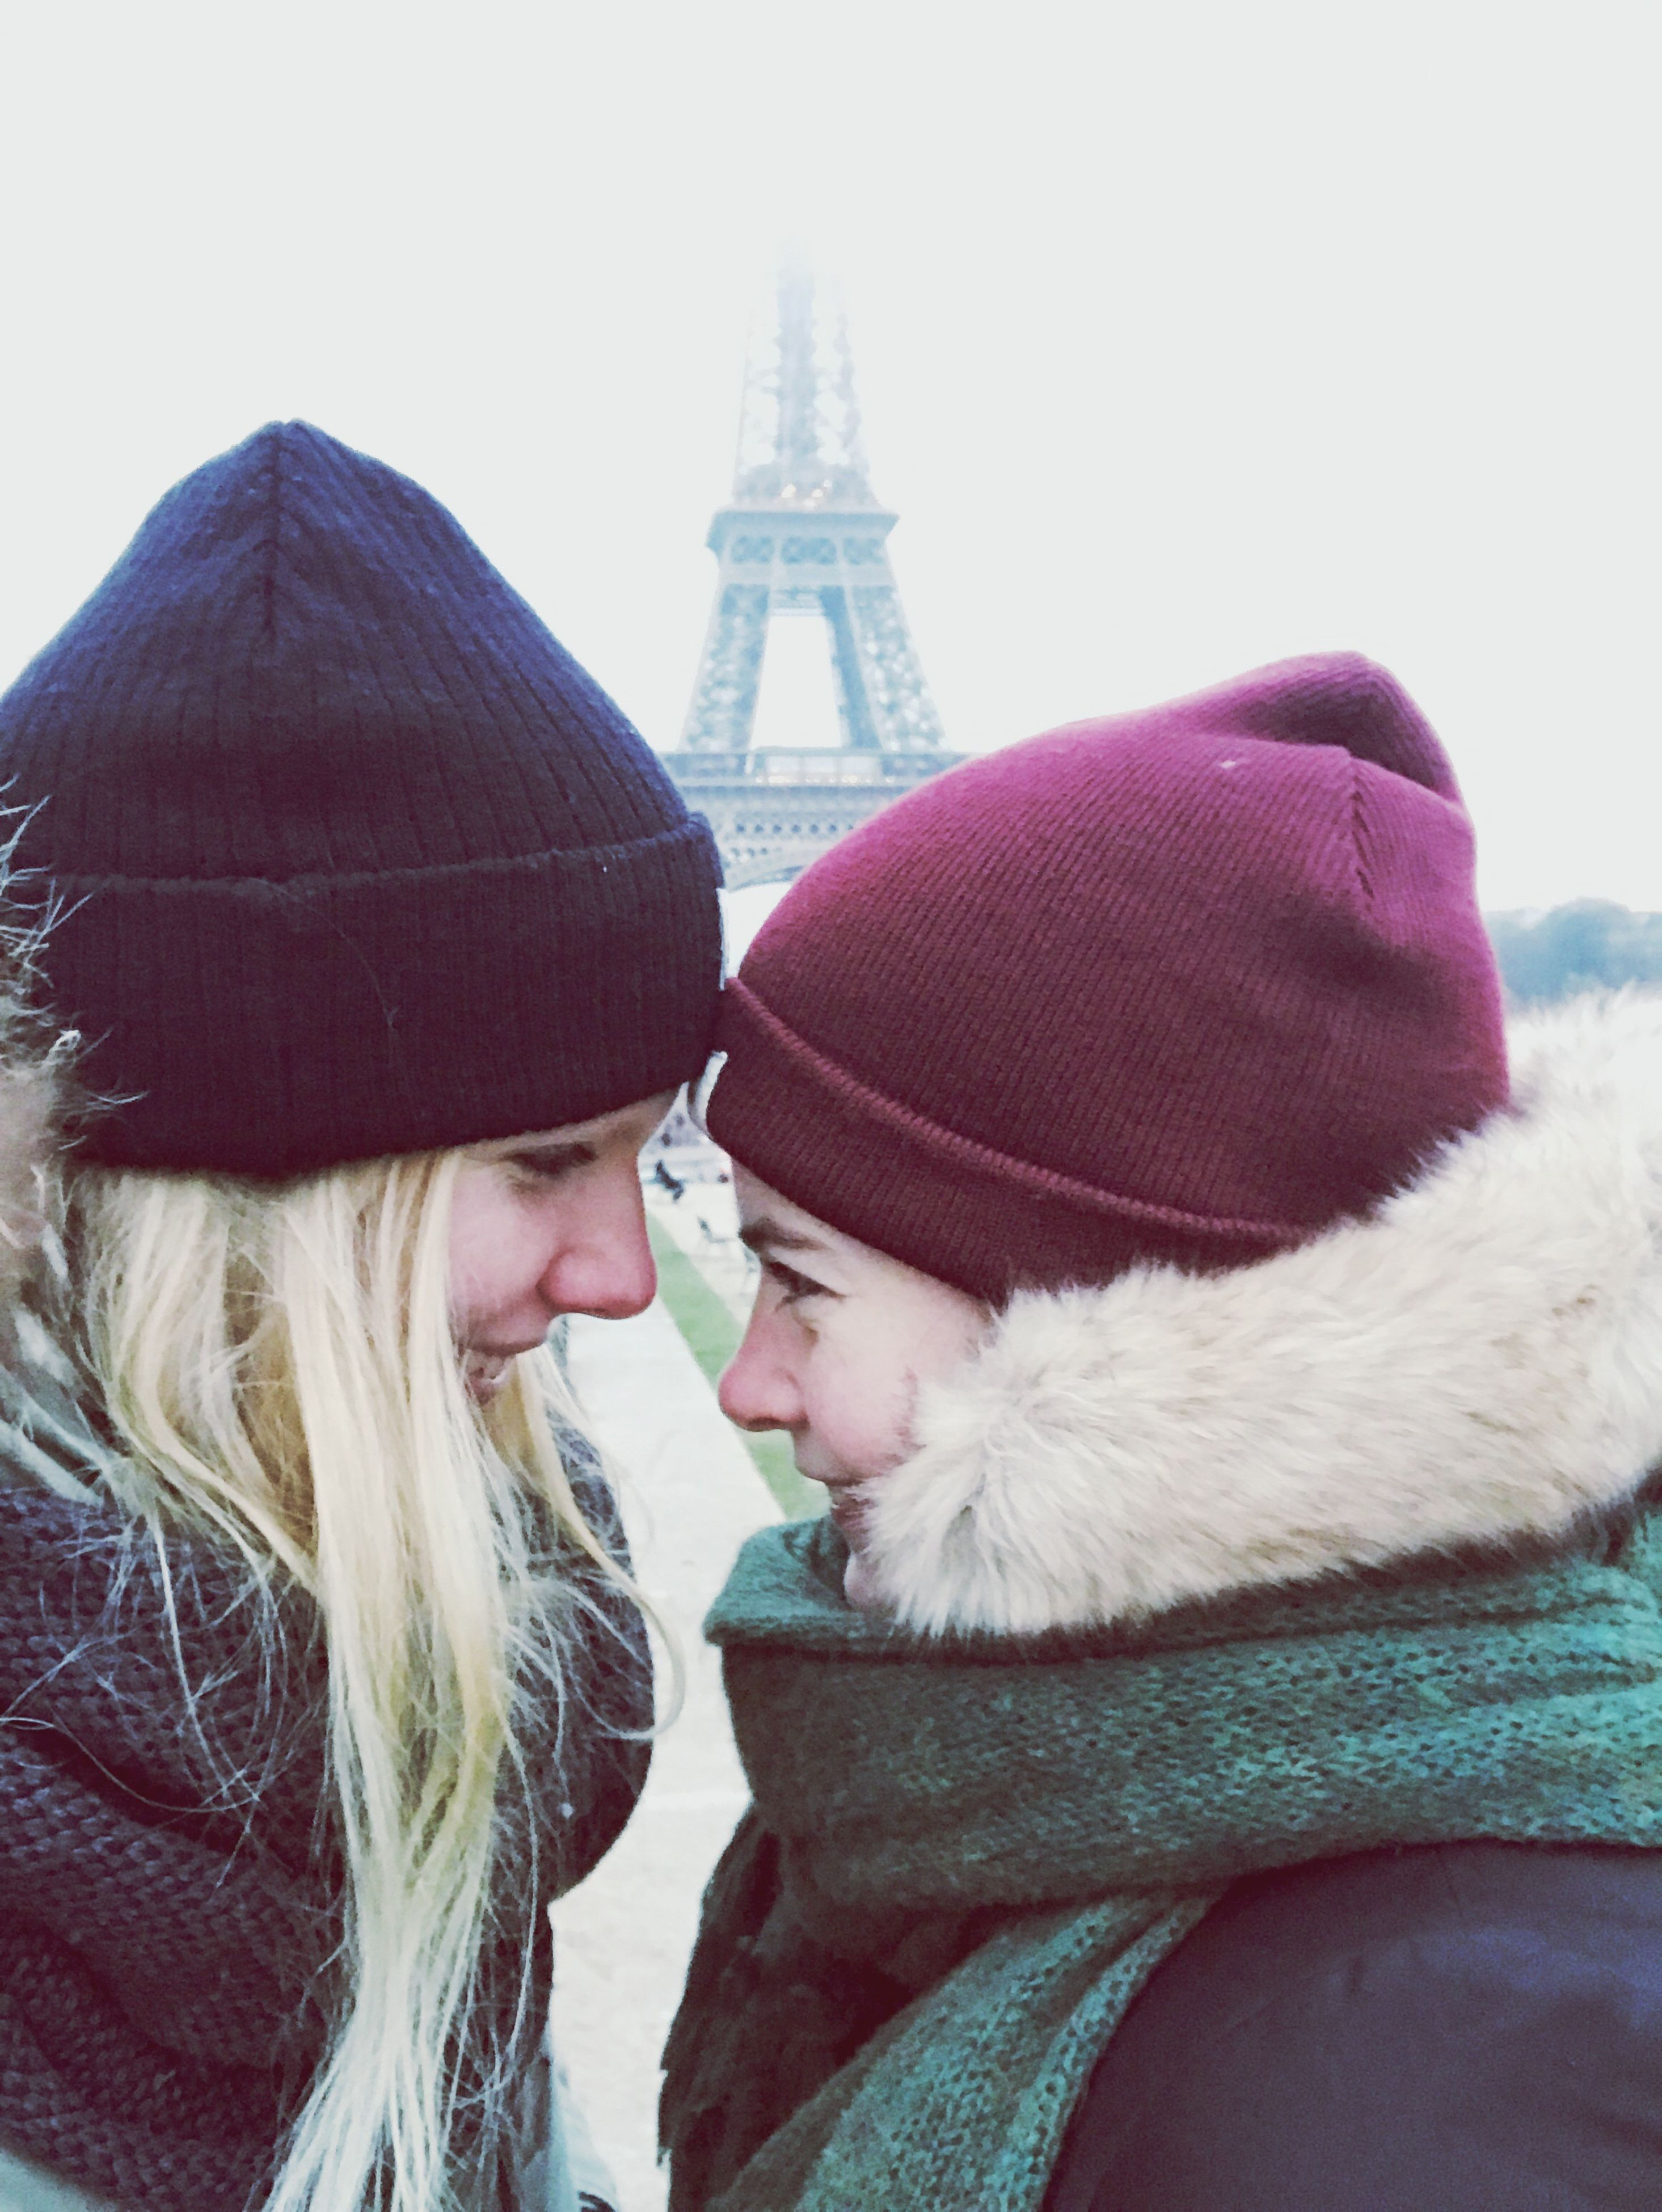 two people, love, knit hat, young adult, togetherness, warm clothing, young women, bonding, architecture, winter, vacations, men, outdoors, people, day, adults only, adult